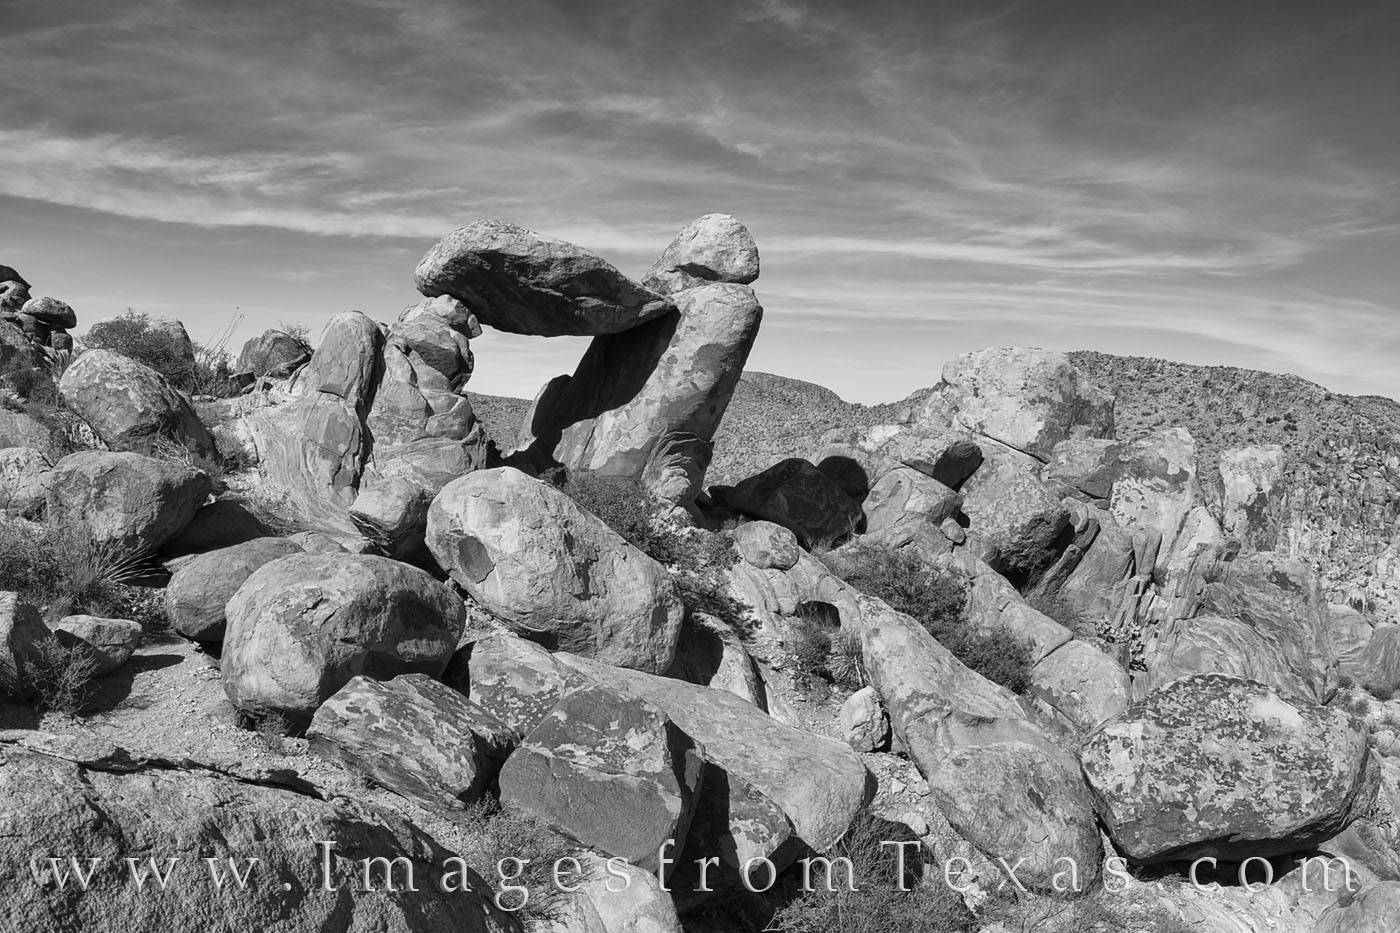 balanced rock, grapevine hills, big bend, big bend hikes, hiking, hiking big bend, big bend national park, easy hikes, rock formations, photo